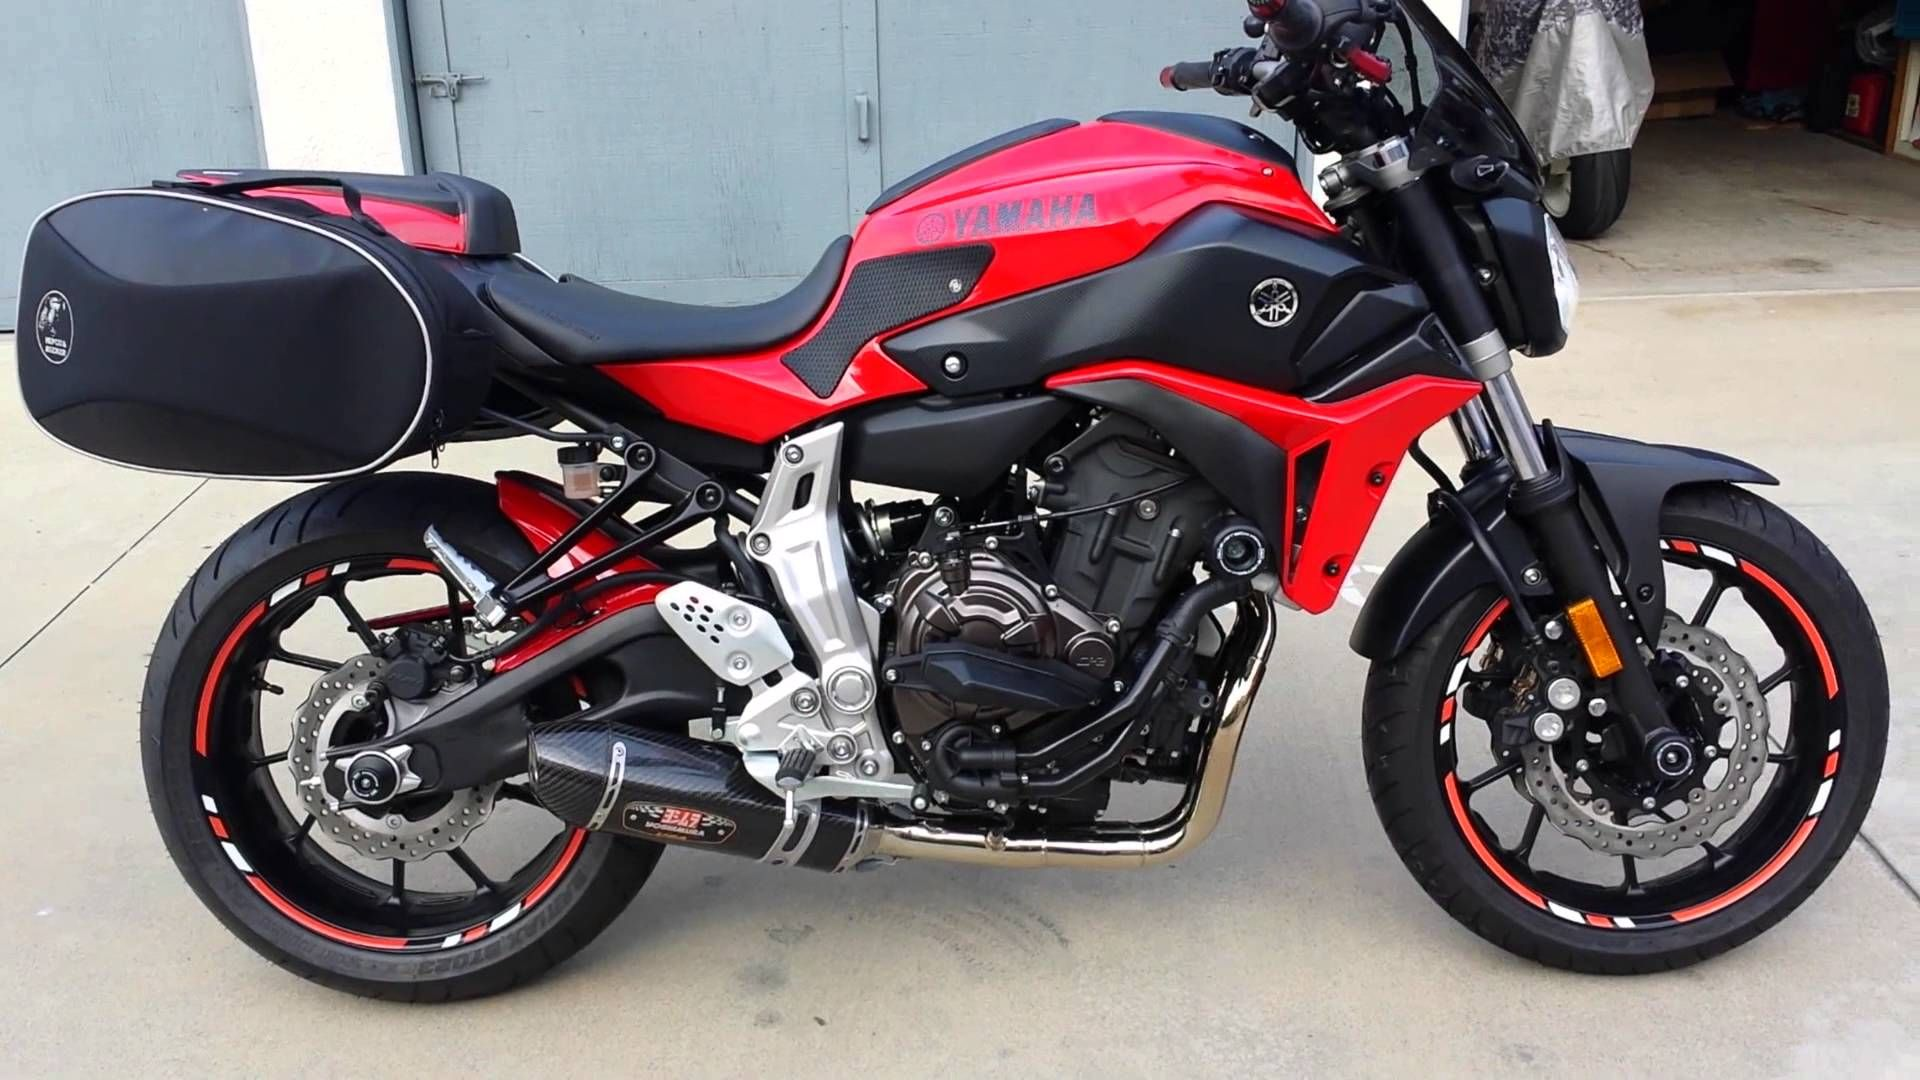 2015 Yamaha Red Fz 07 Mt 07 Walk Through Customized For